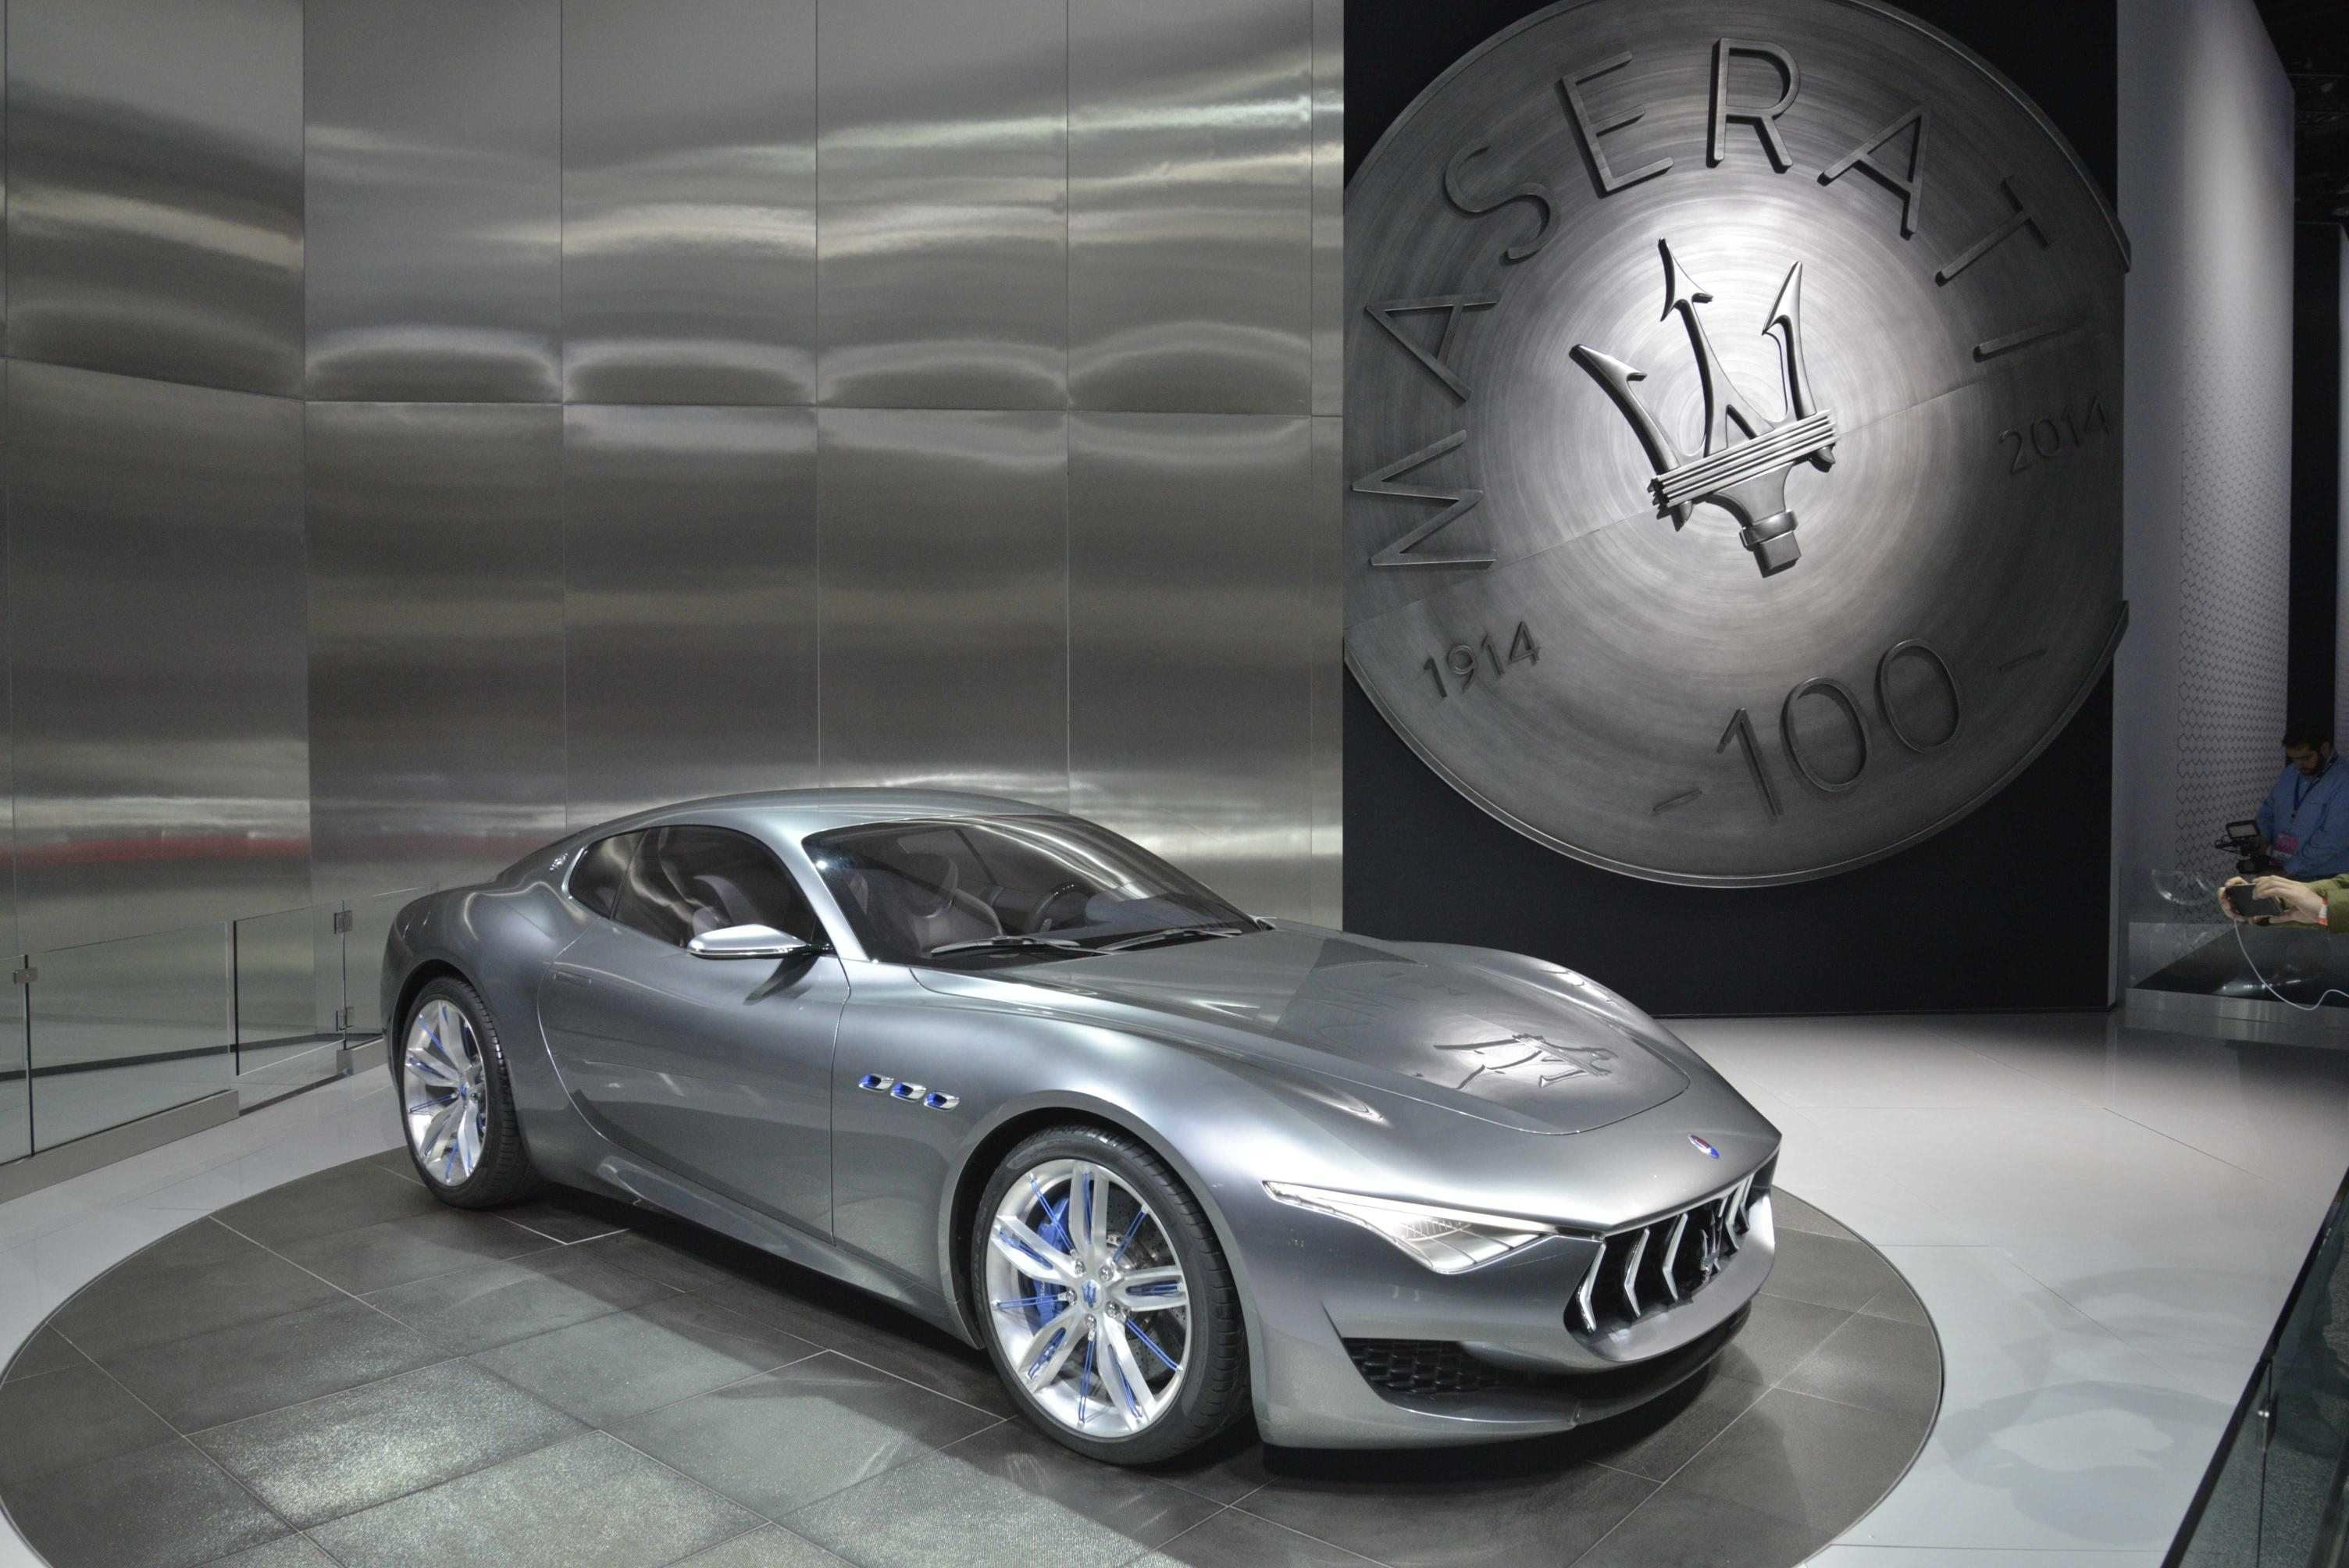 76 All New 2020 Maserati Alfieri Images by 2020 Maserati Alfieri